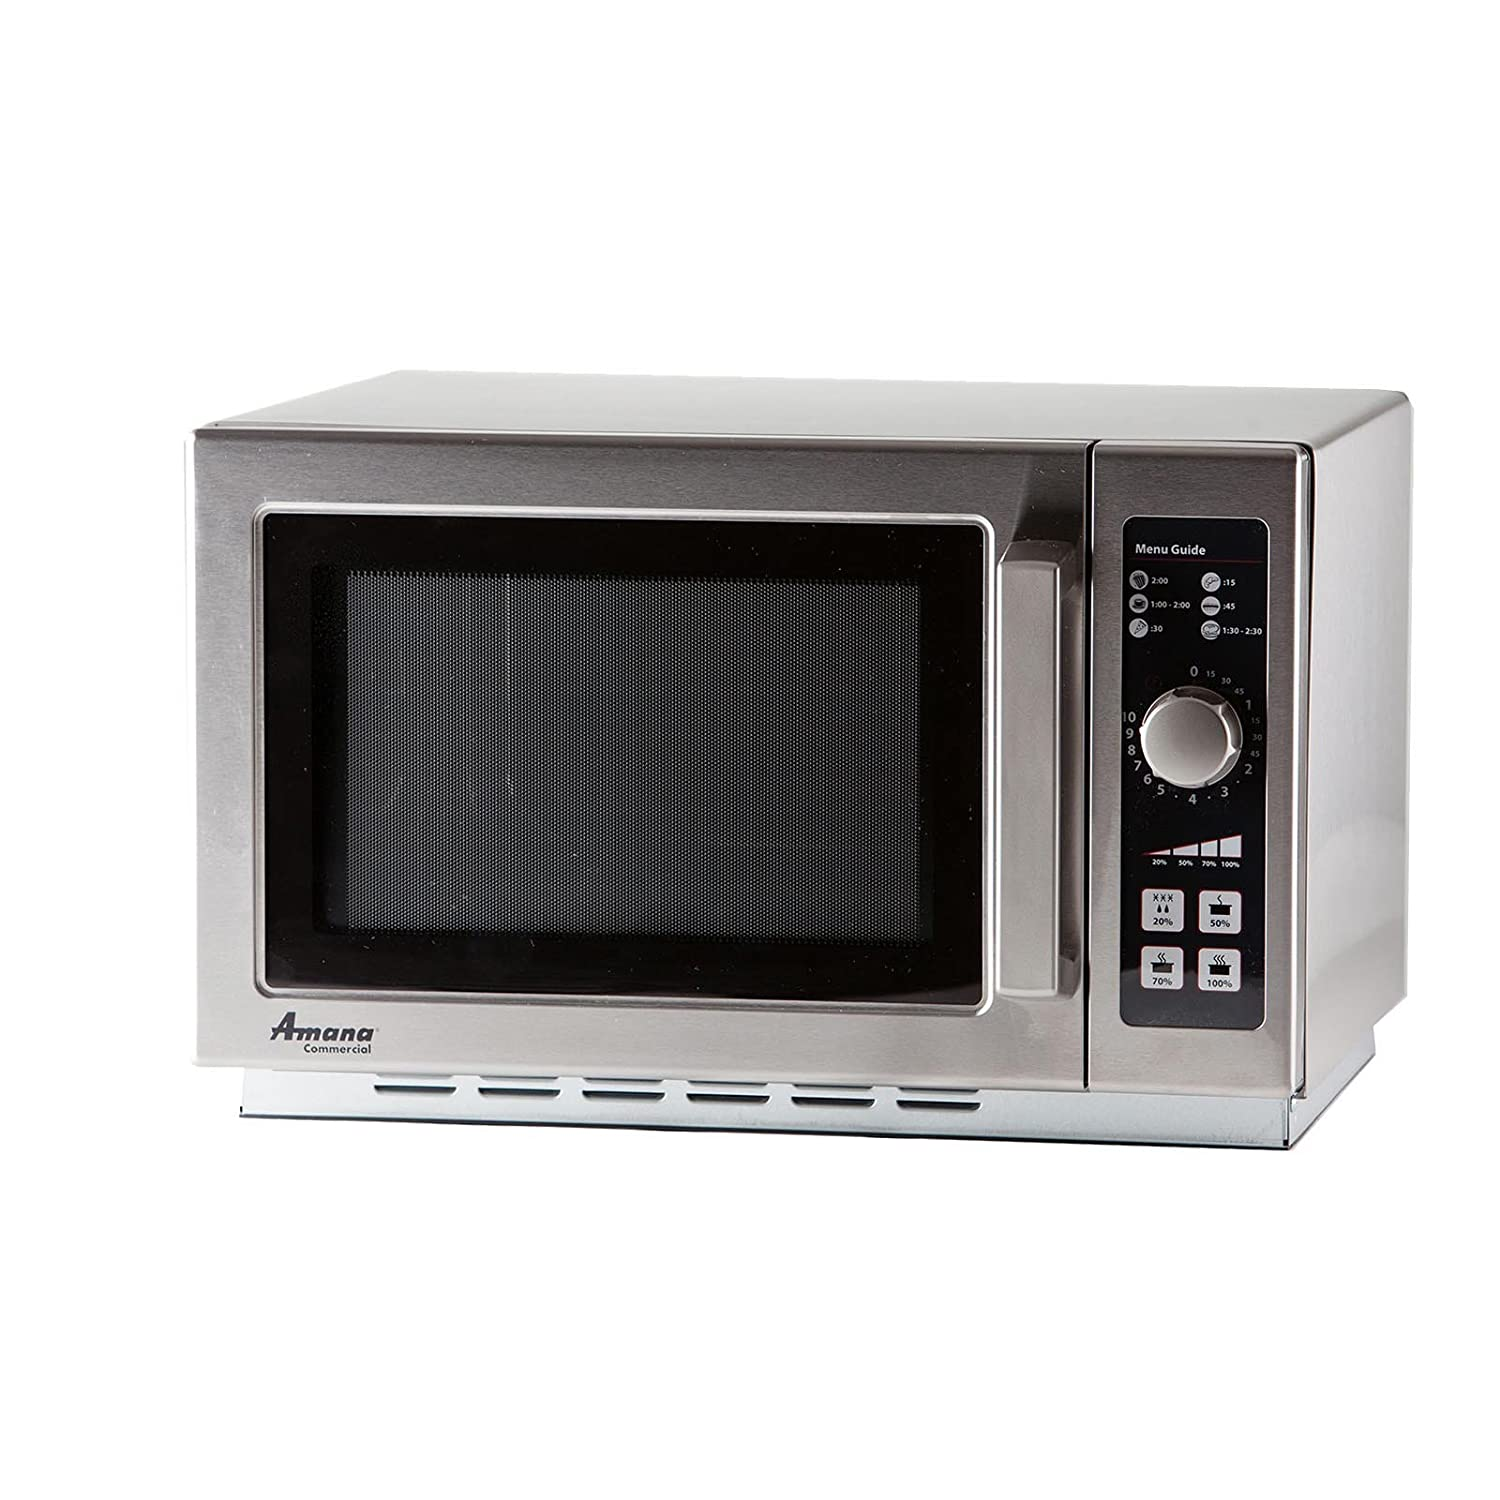 Amana RCS10DSE Medium-Duty Microwave Oven, 1000W